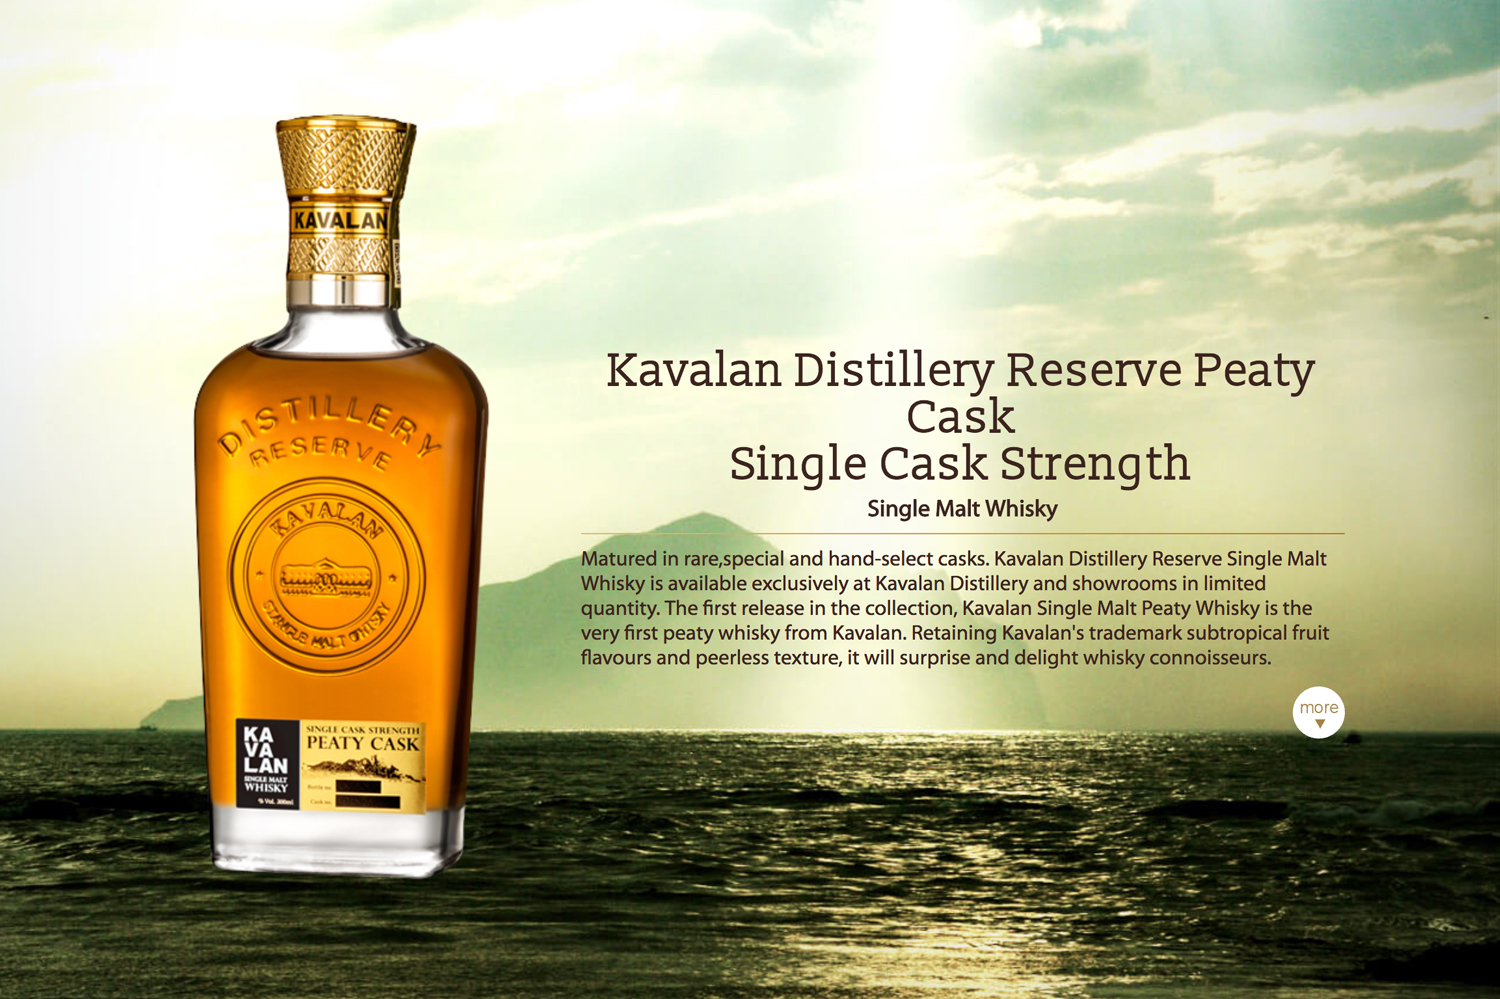 The Kavalan Distillery Reserve Peaty Cask was the Gold medal winners this year.